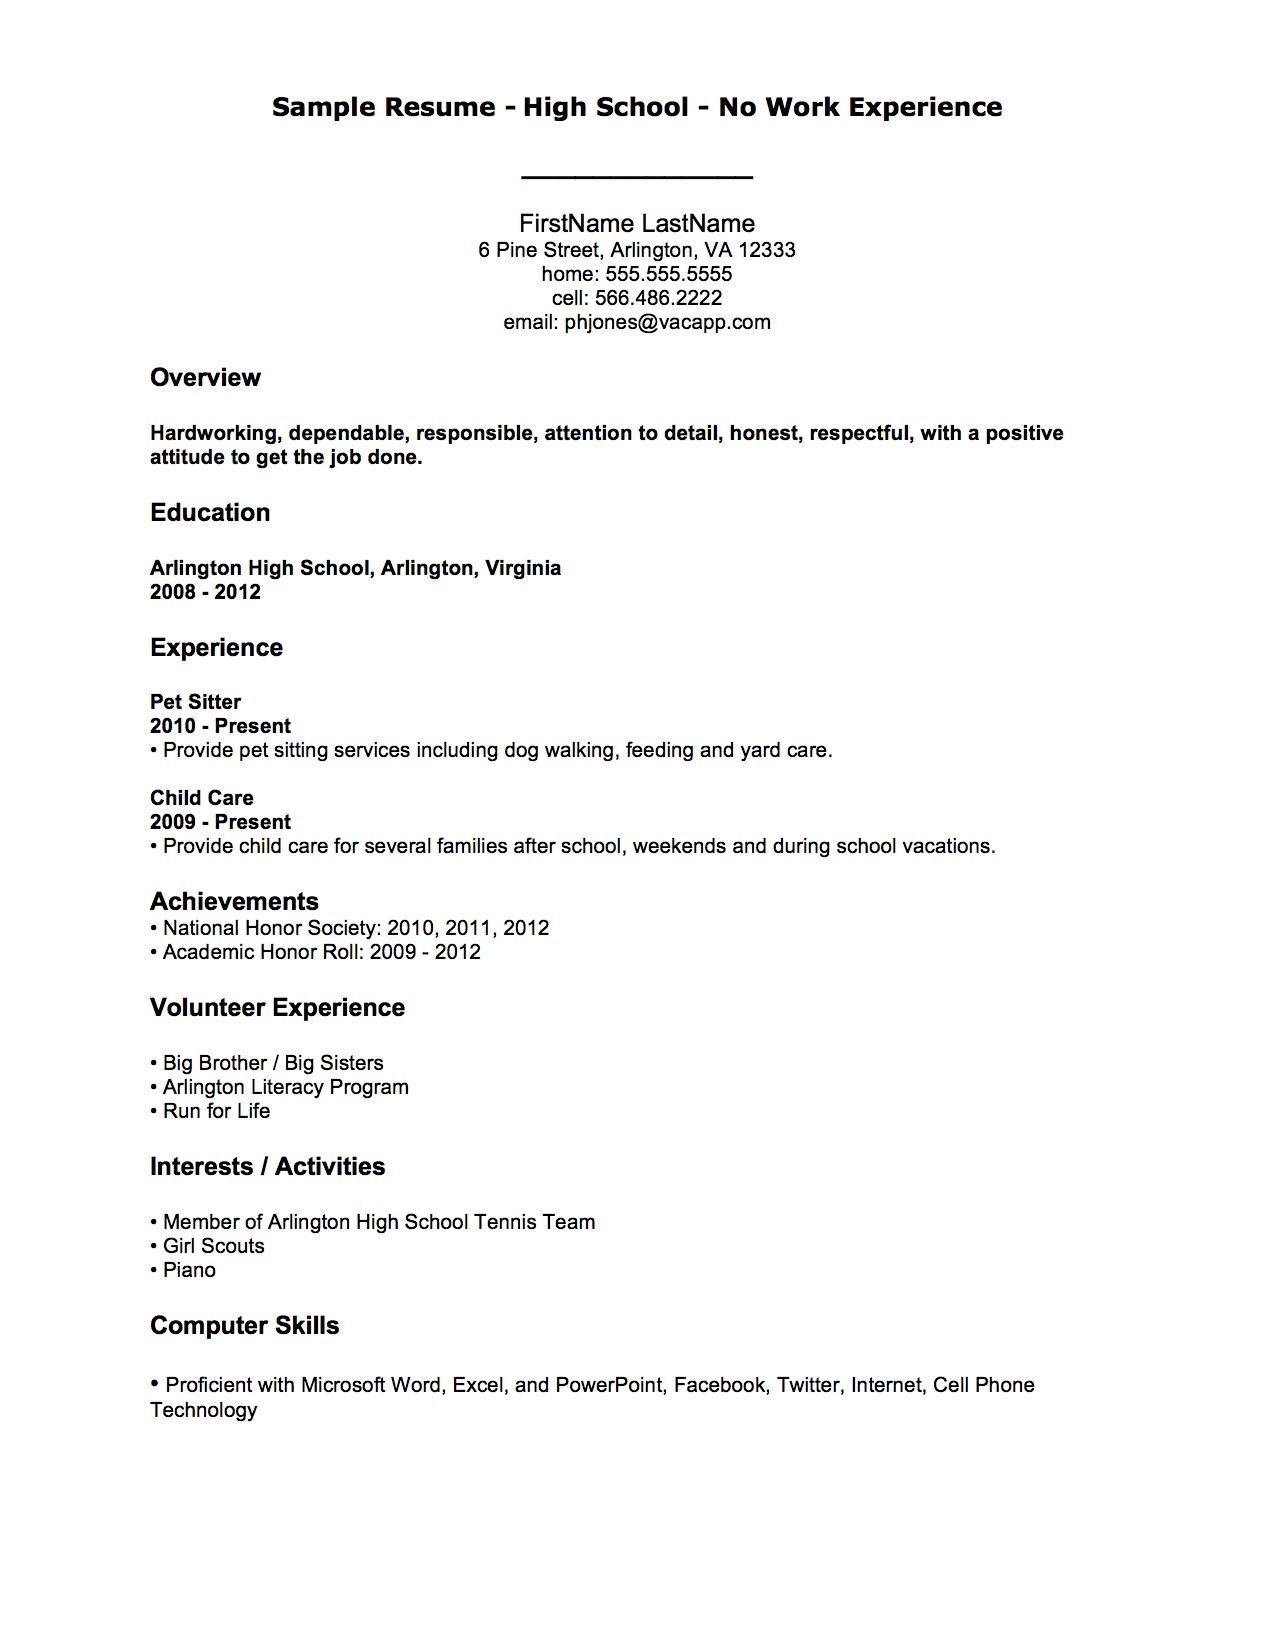 A Job Resume Sample Beauteous Resume Examples No Job Experience  Resume Examples  Pinterest .